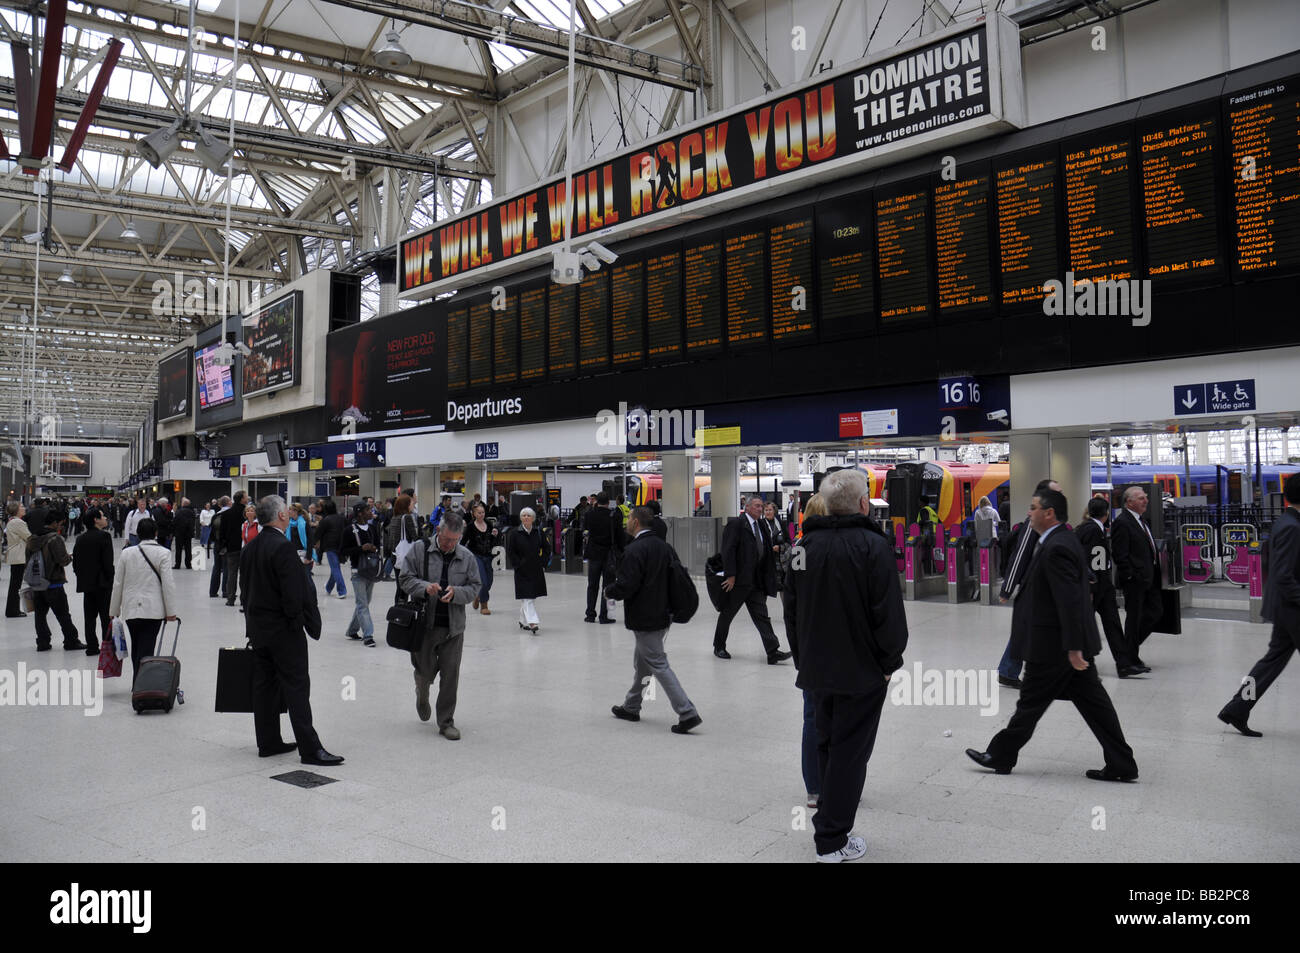 Waterloo Station Concorse Commuter Train Passengers - Stock Image